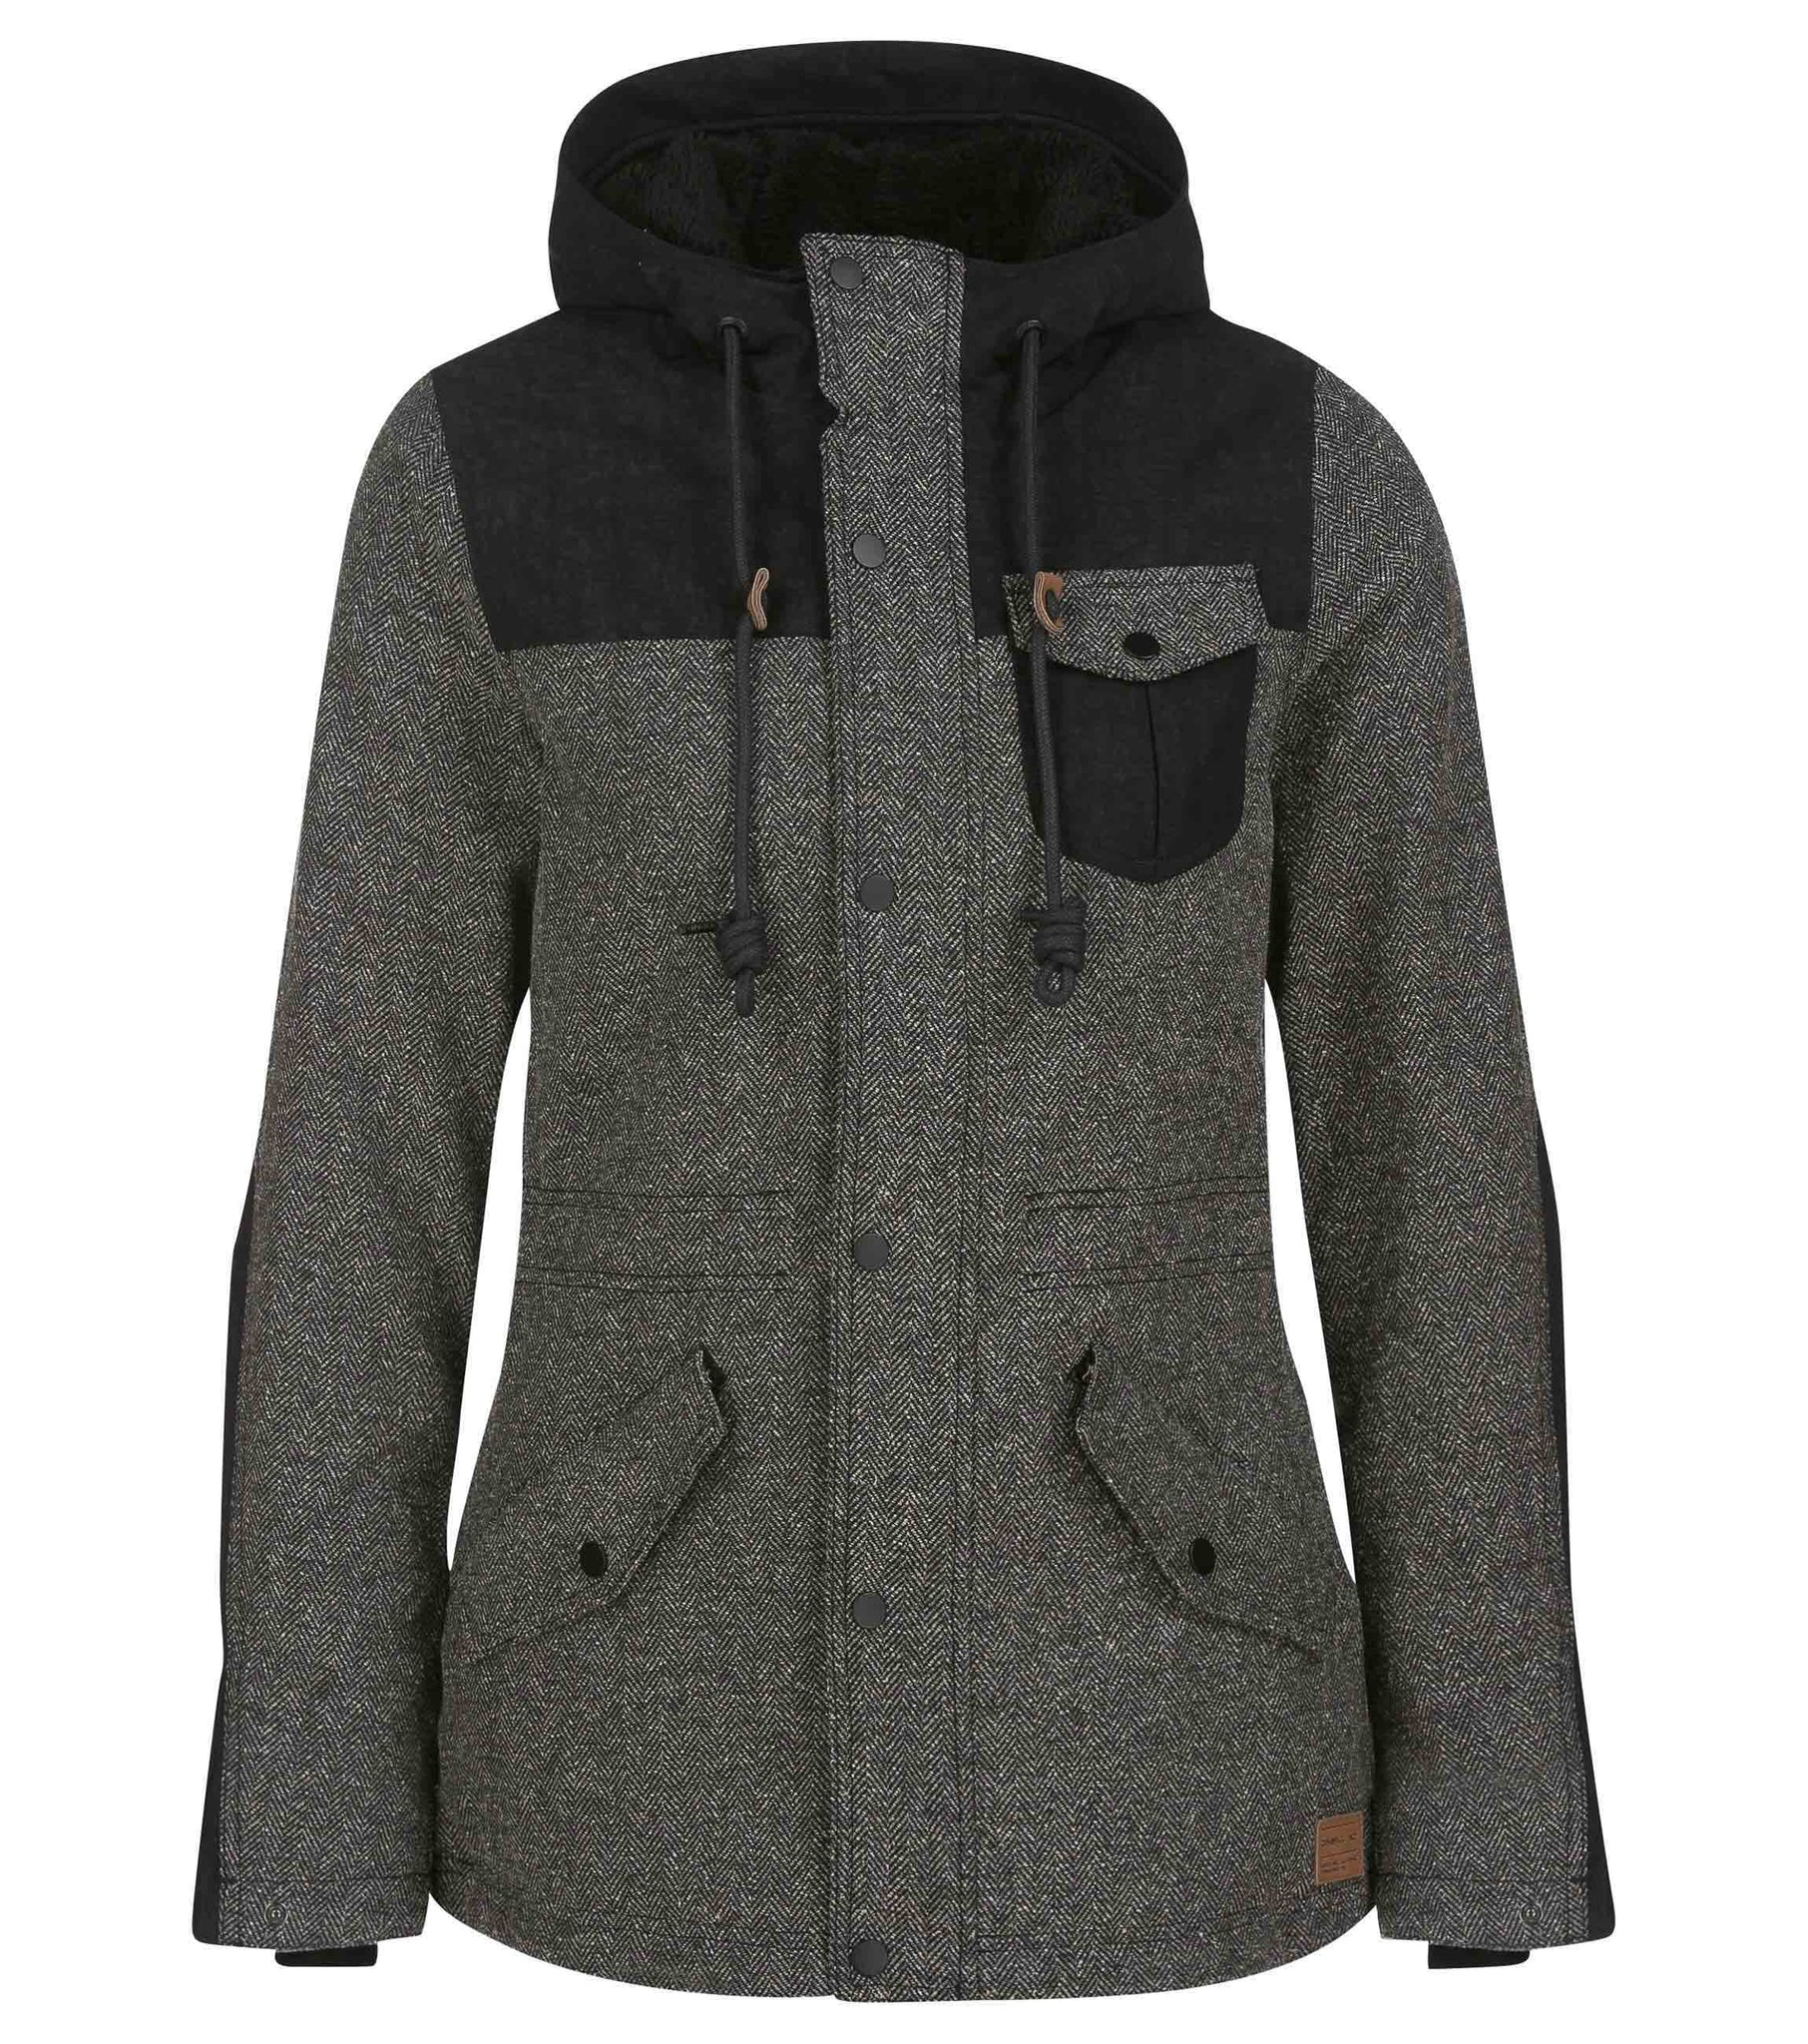 Venus Snow Jacket - Blackout | O'Neill